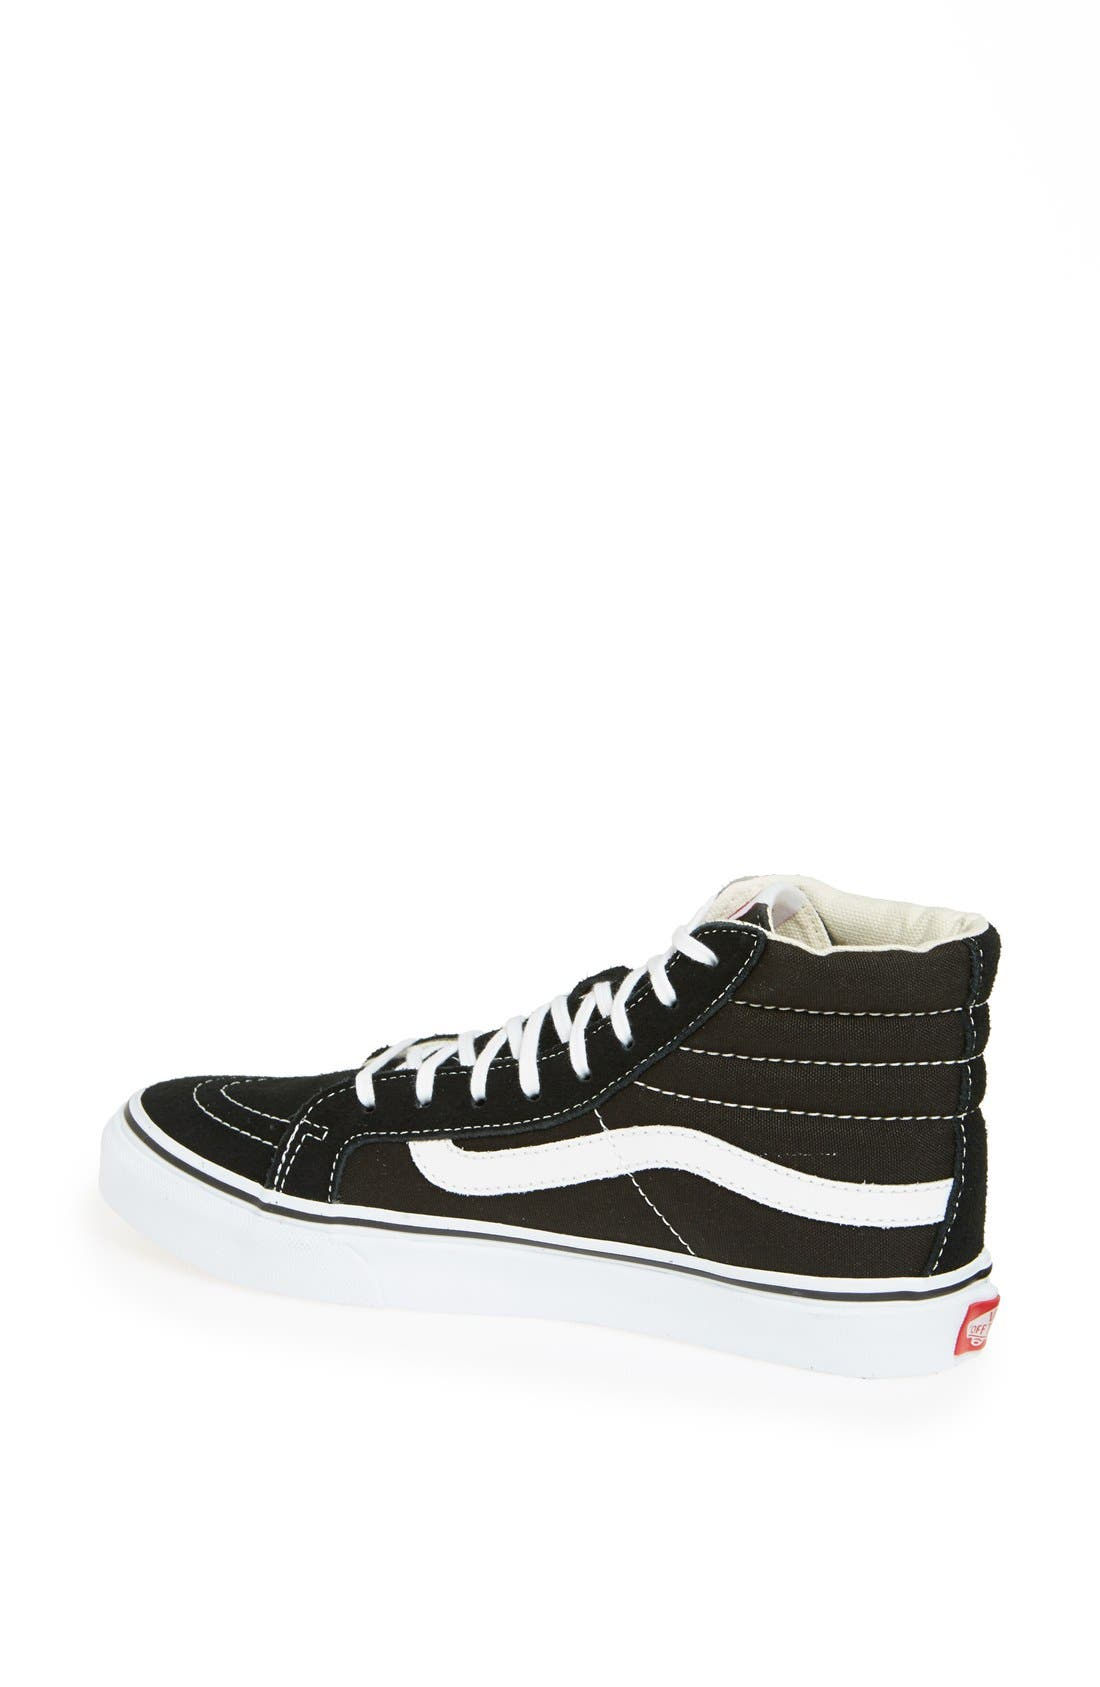 Alternate Image 4  - Vans Sk8-Hi Slim High Top Sneaker (Women)